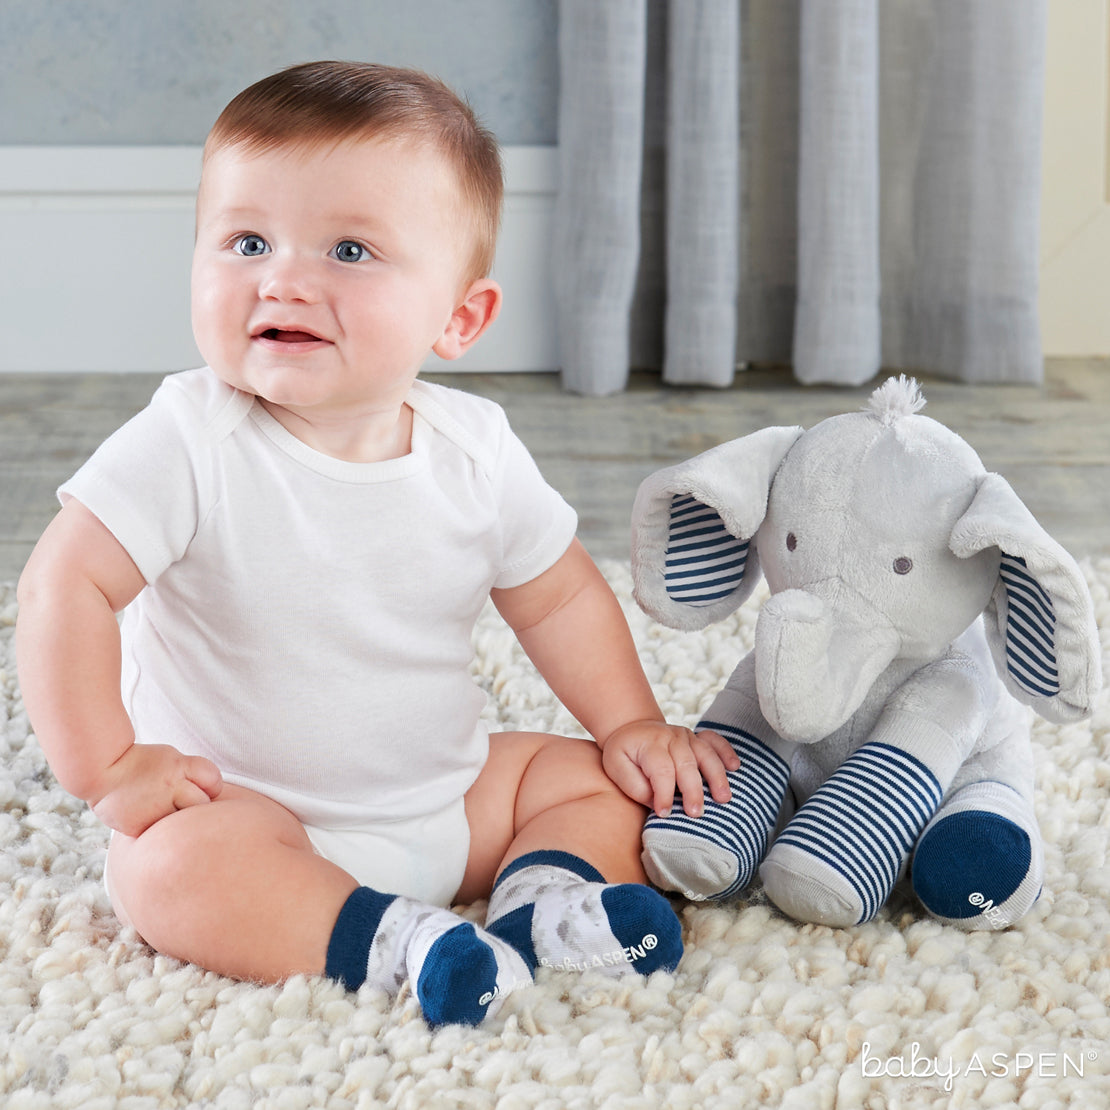 Louie The Elephant | Sweet Elephant Themed Gifts For Your Little Peanut | Baby Aspen